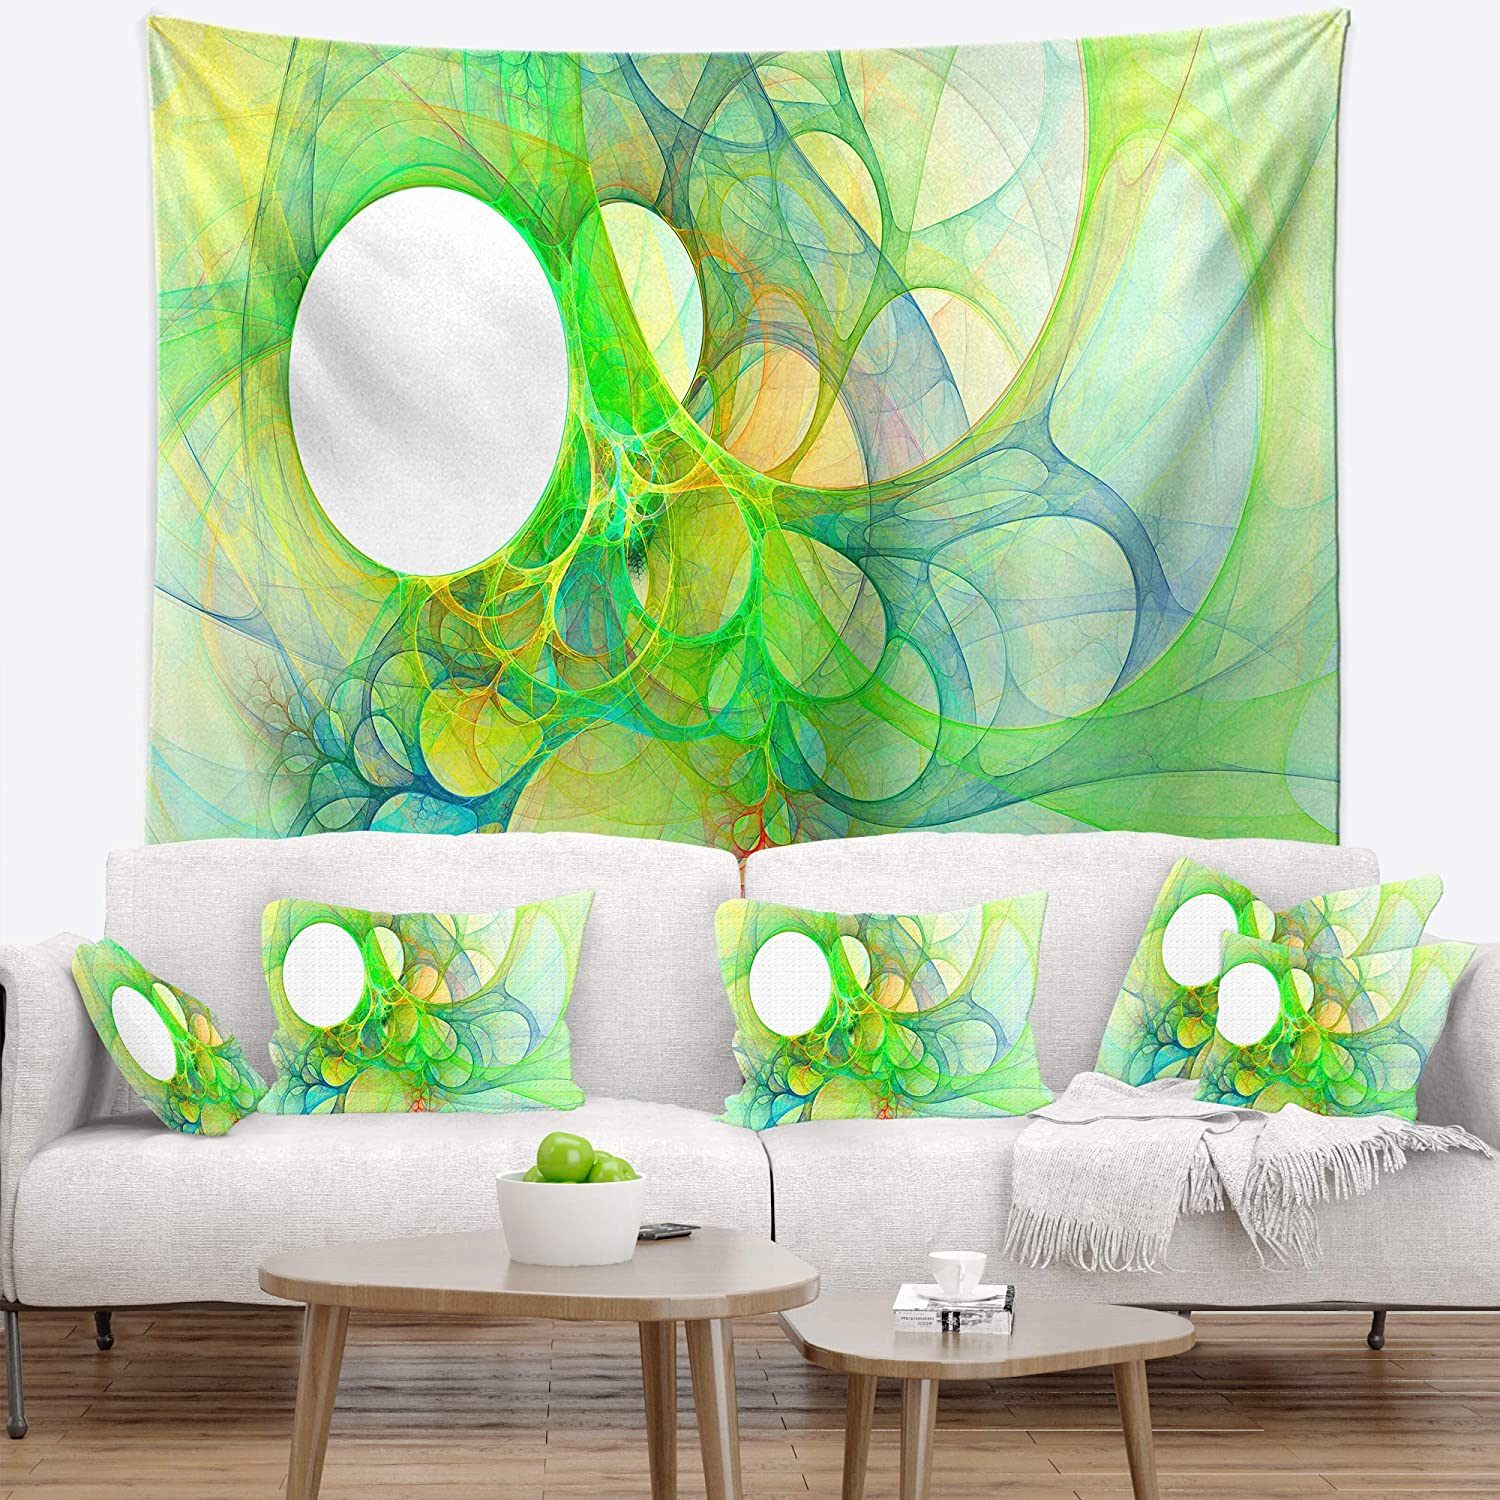 39 x 32, Medium Designart TAP16022-39-32 Fractal Angel Wings in Green Abstract Blanket D/écor Art for Home and Office Wall Tapestry